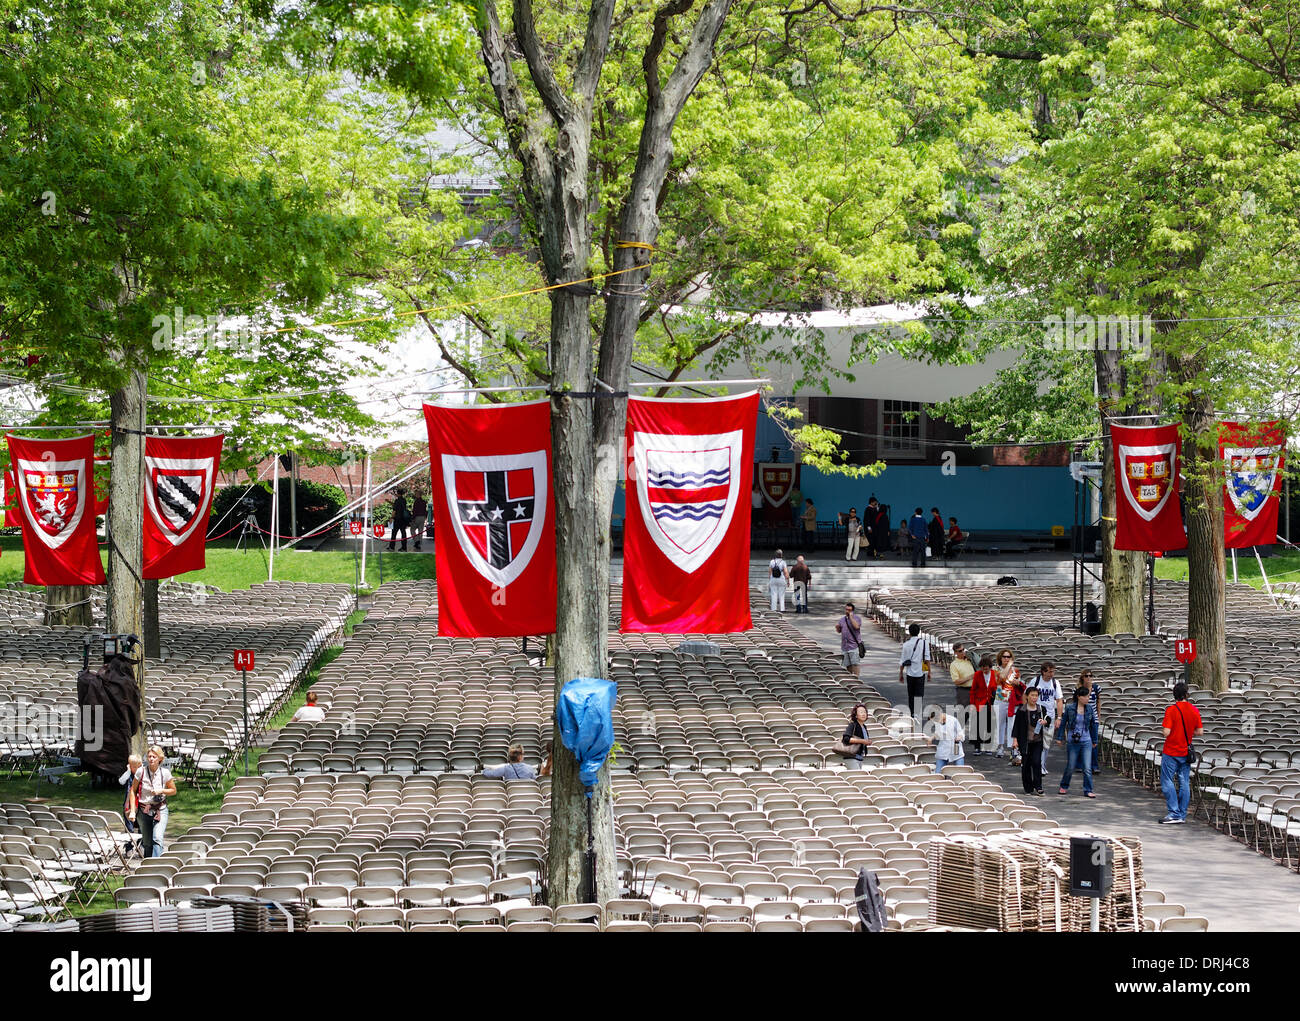 Harvard Yard, old heart of Harvard University campus, flagged and prepared for Commencement ceremonies in Cambridge, Stock Photo